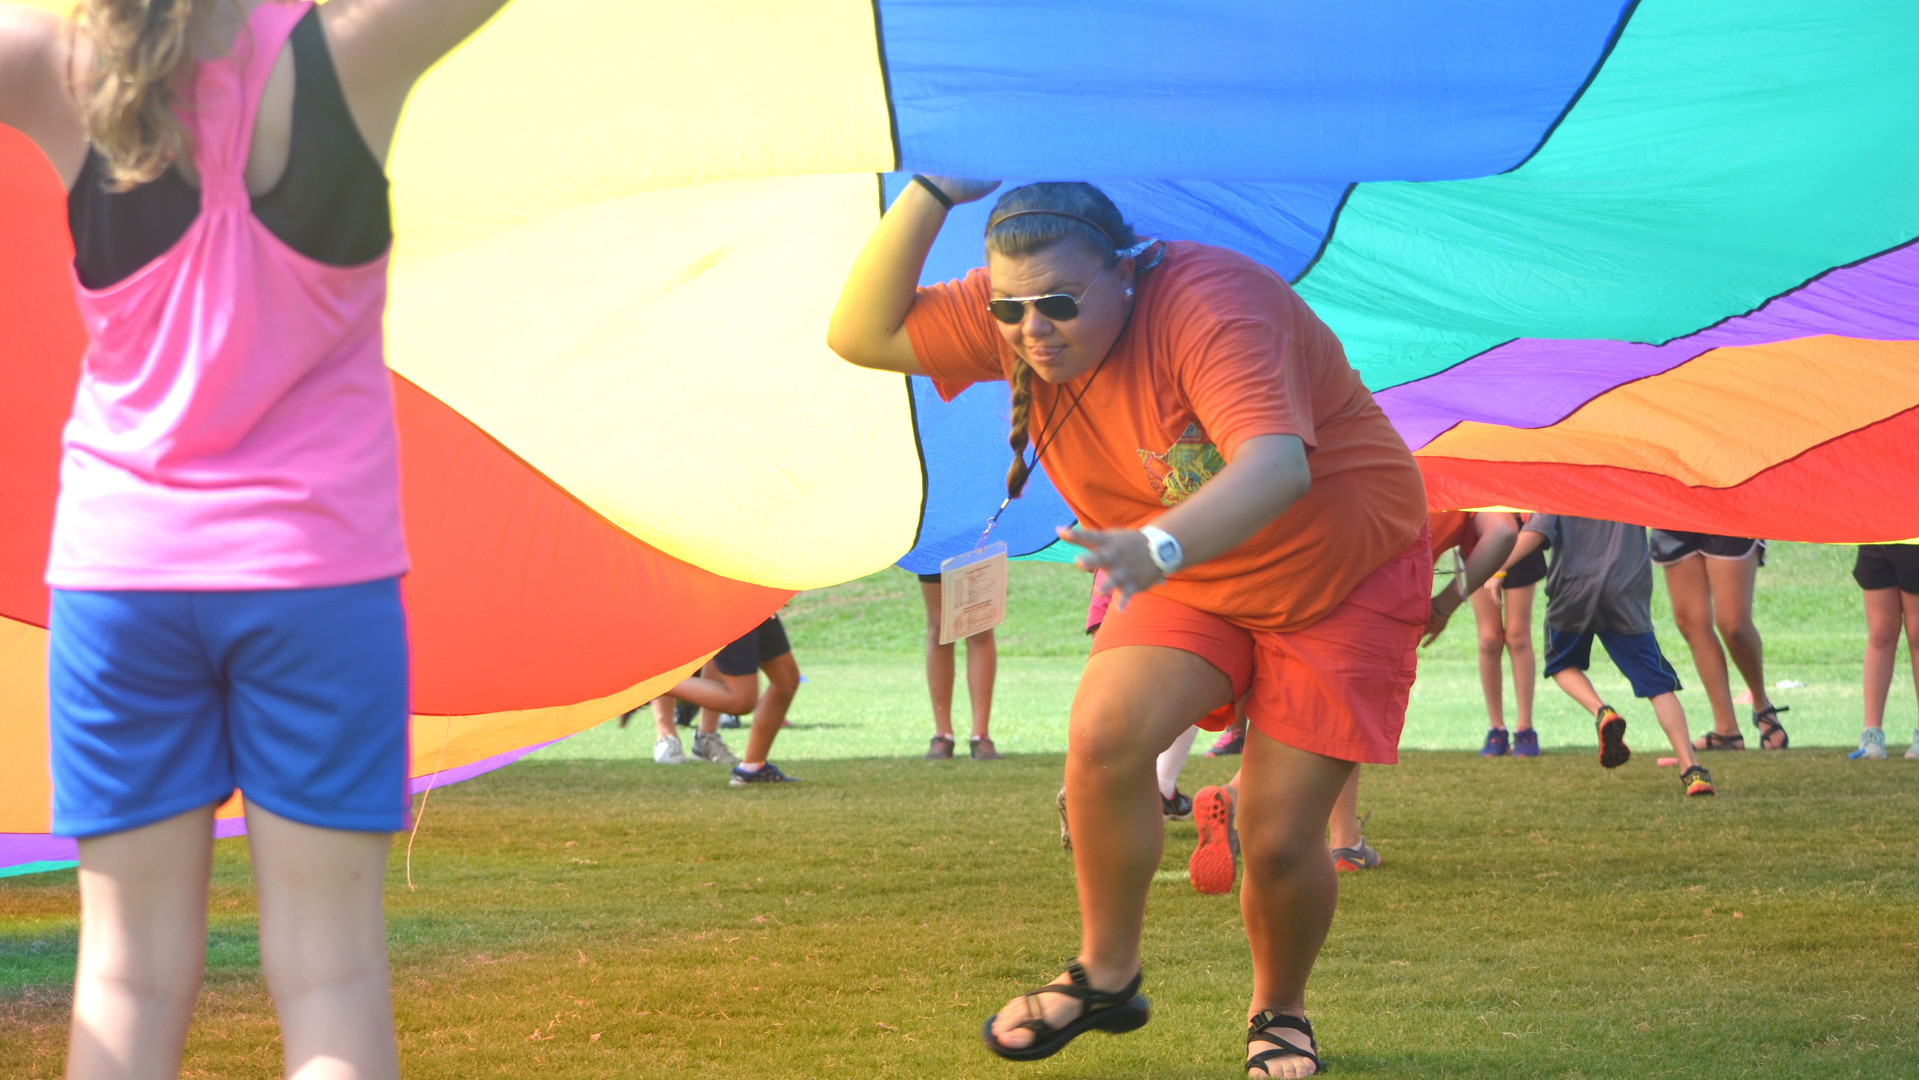 A camper runs underneath a parachute during an outdoor recreation game at a summer day camp in 2015.